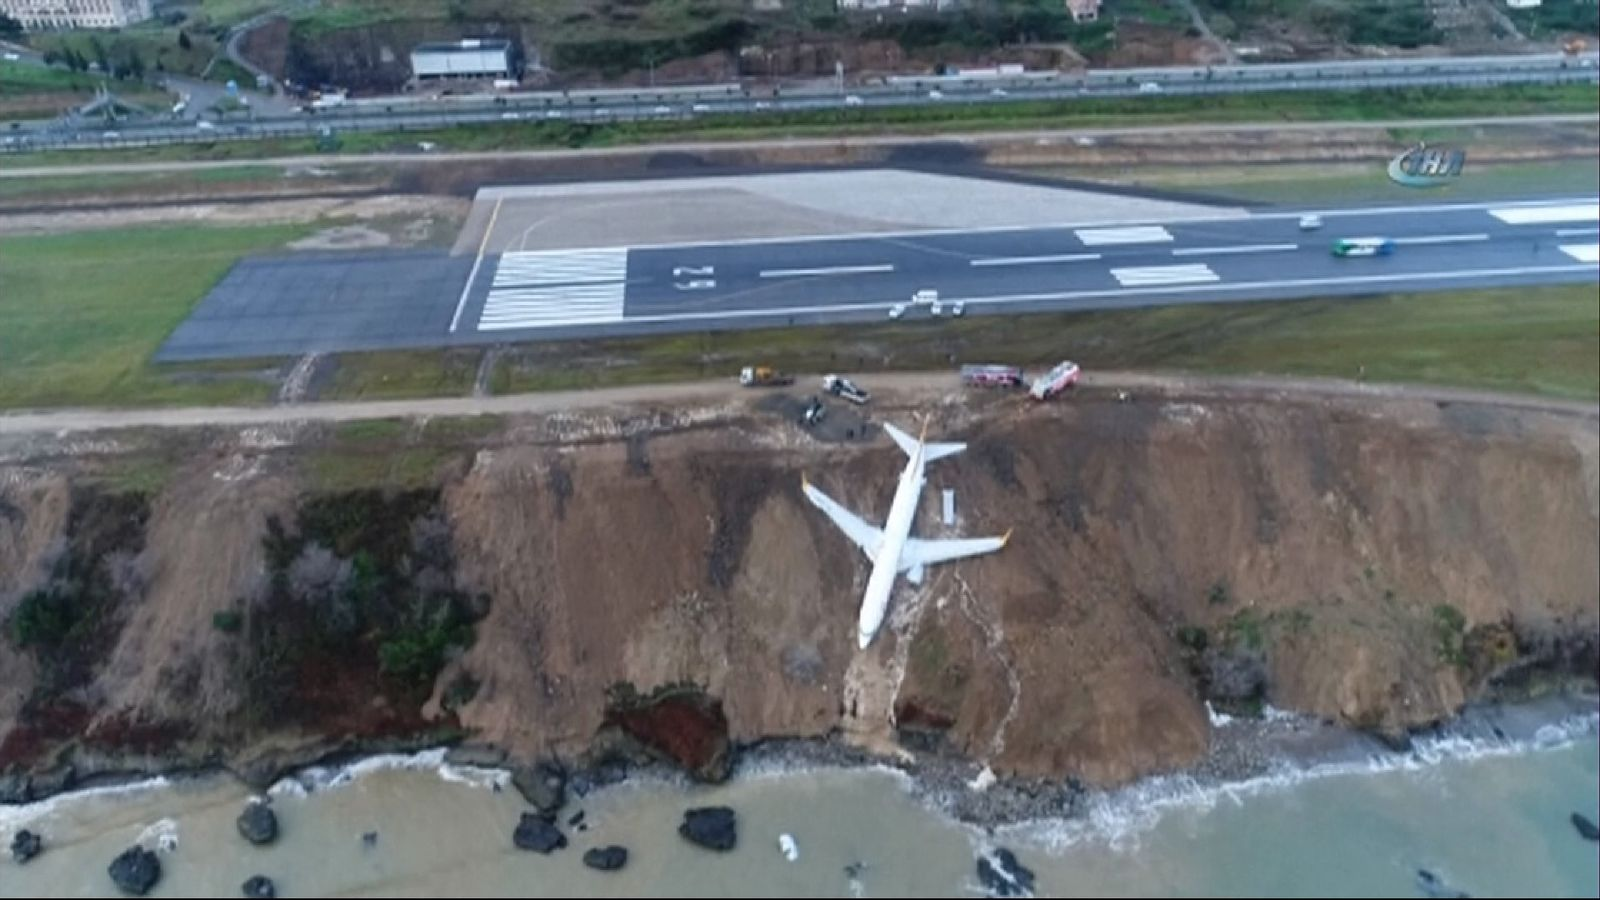 Plane skids off runway and gets stuck in mud on cliff edge in Turkey